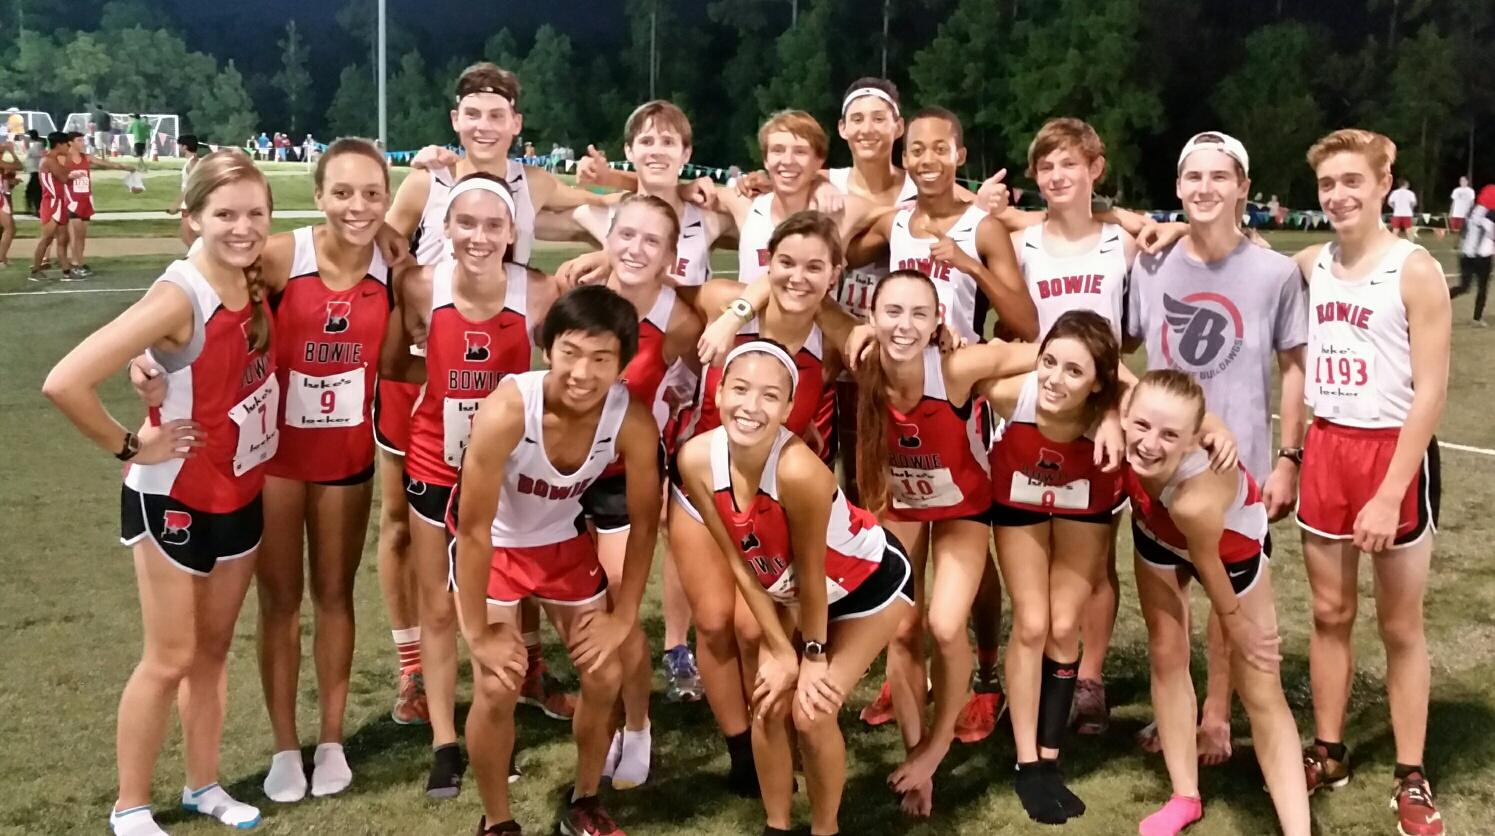 College cross country teams gearing up for season   News